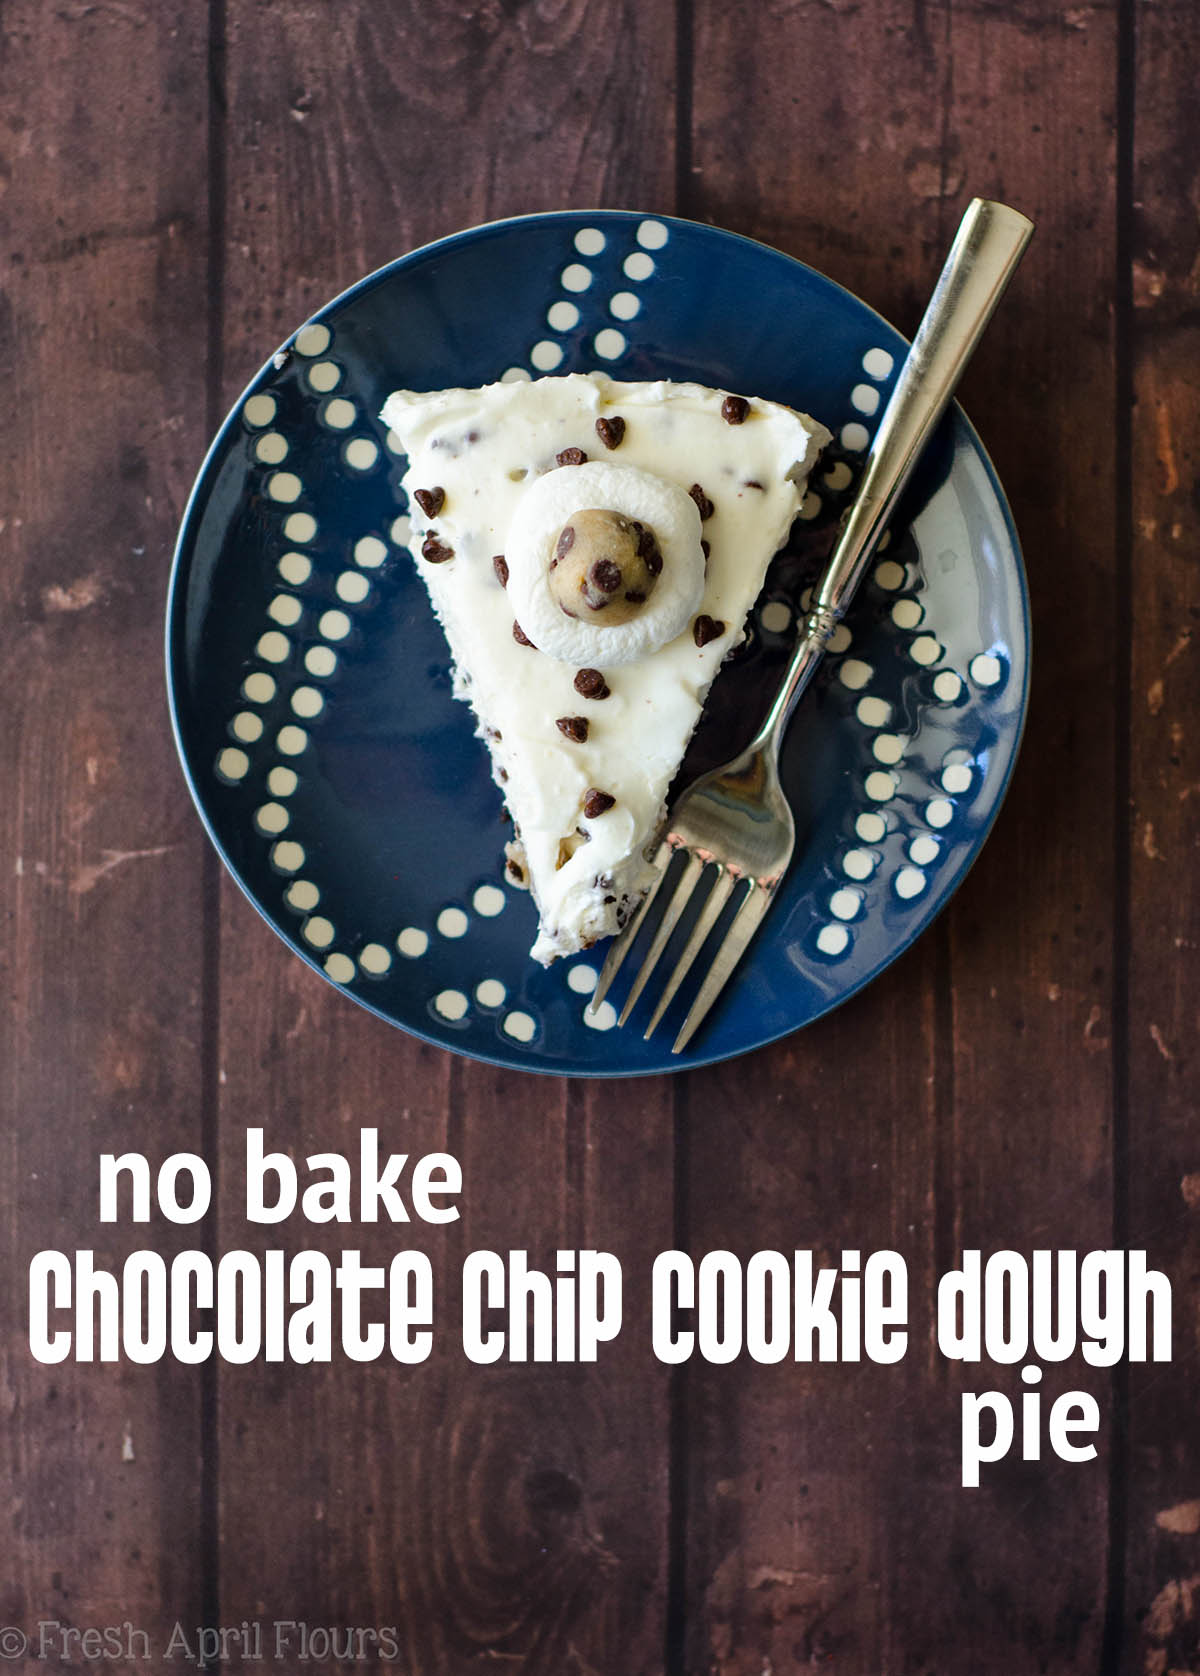 No Bake Chocolate Chip Cookie Dough Pie: An easy, cheesecake-like pie filled with edible cookie dough pieces and plenty of chocolate chips, all atop a crunchy Oreo crust.